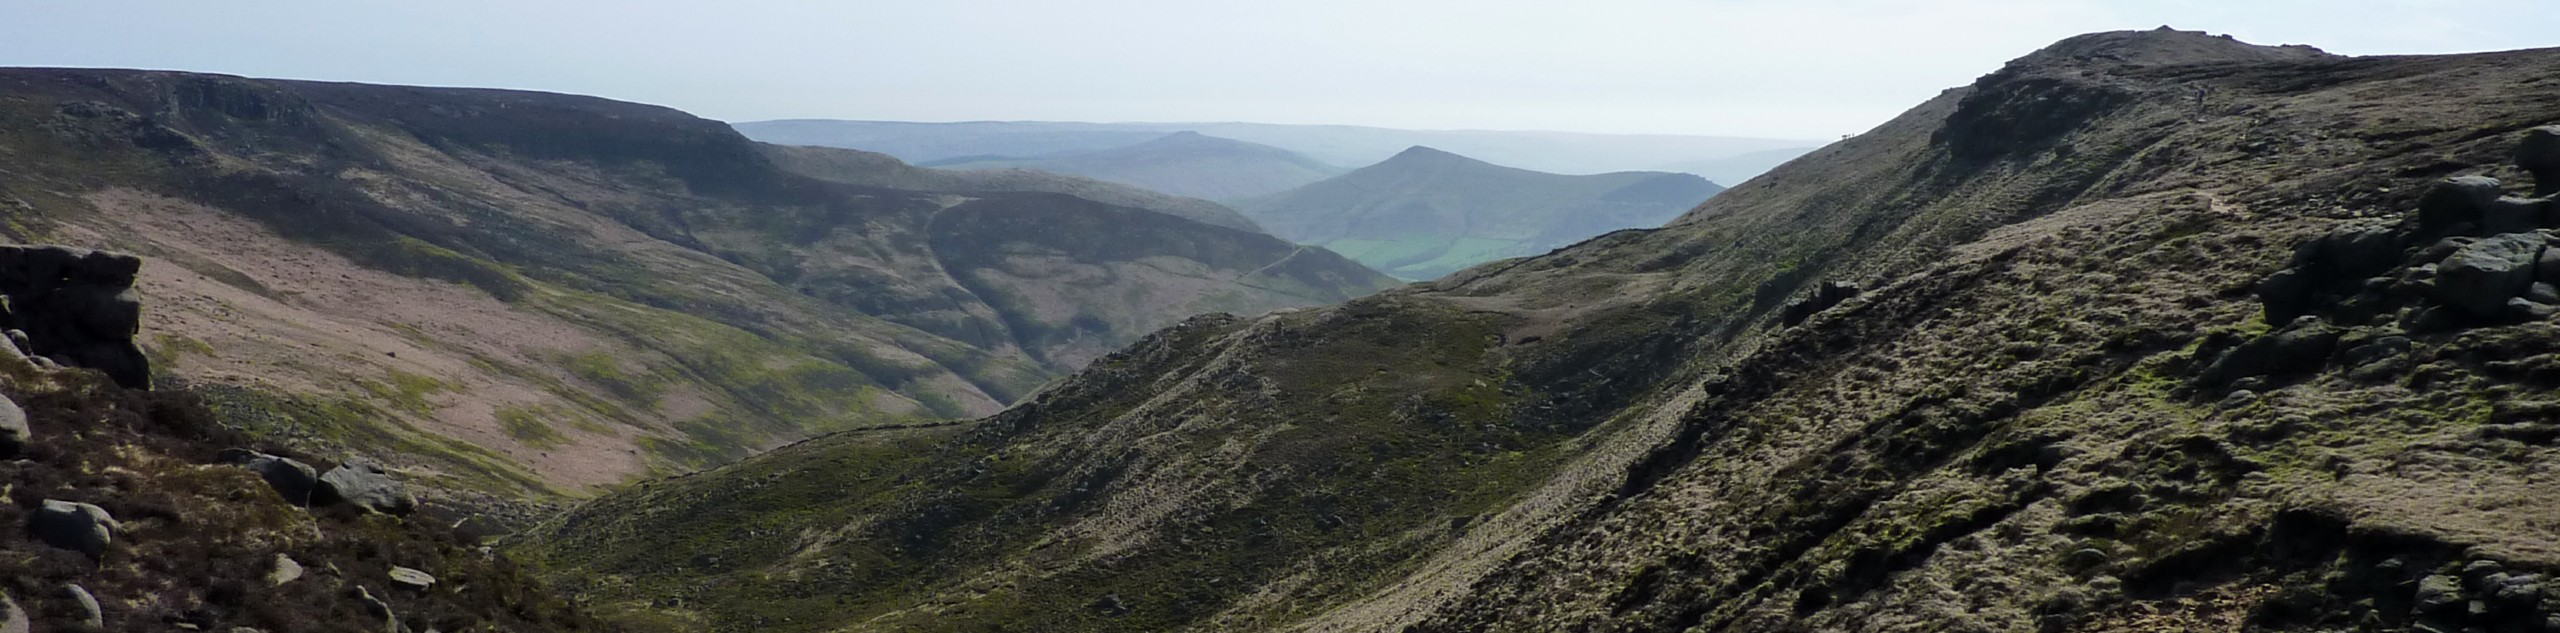 Jacobs Ladder and Edale Circular